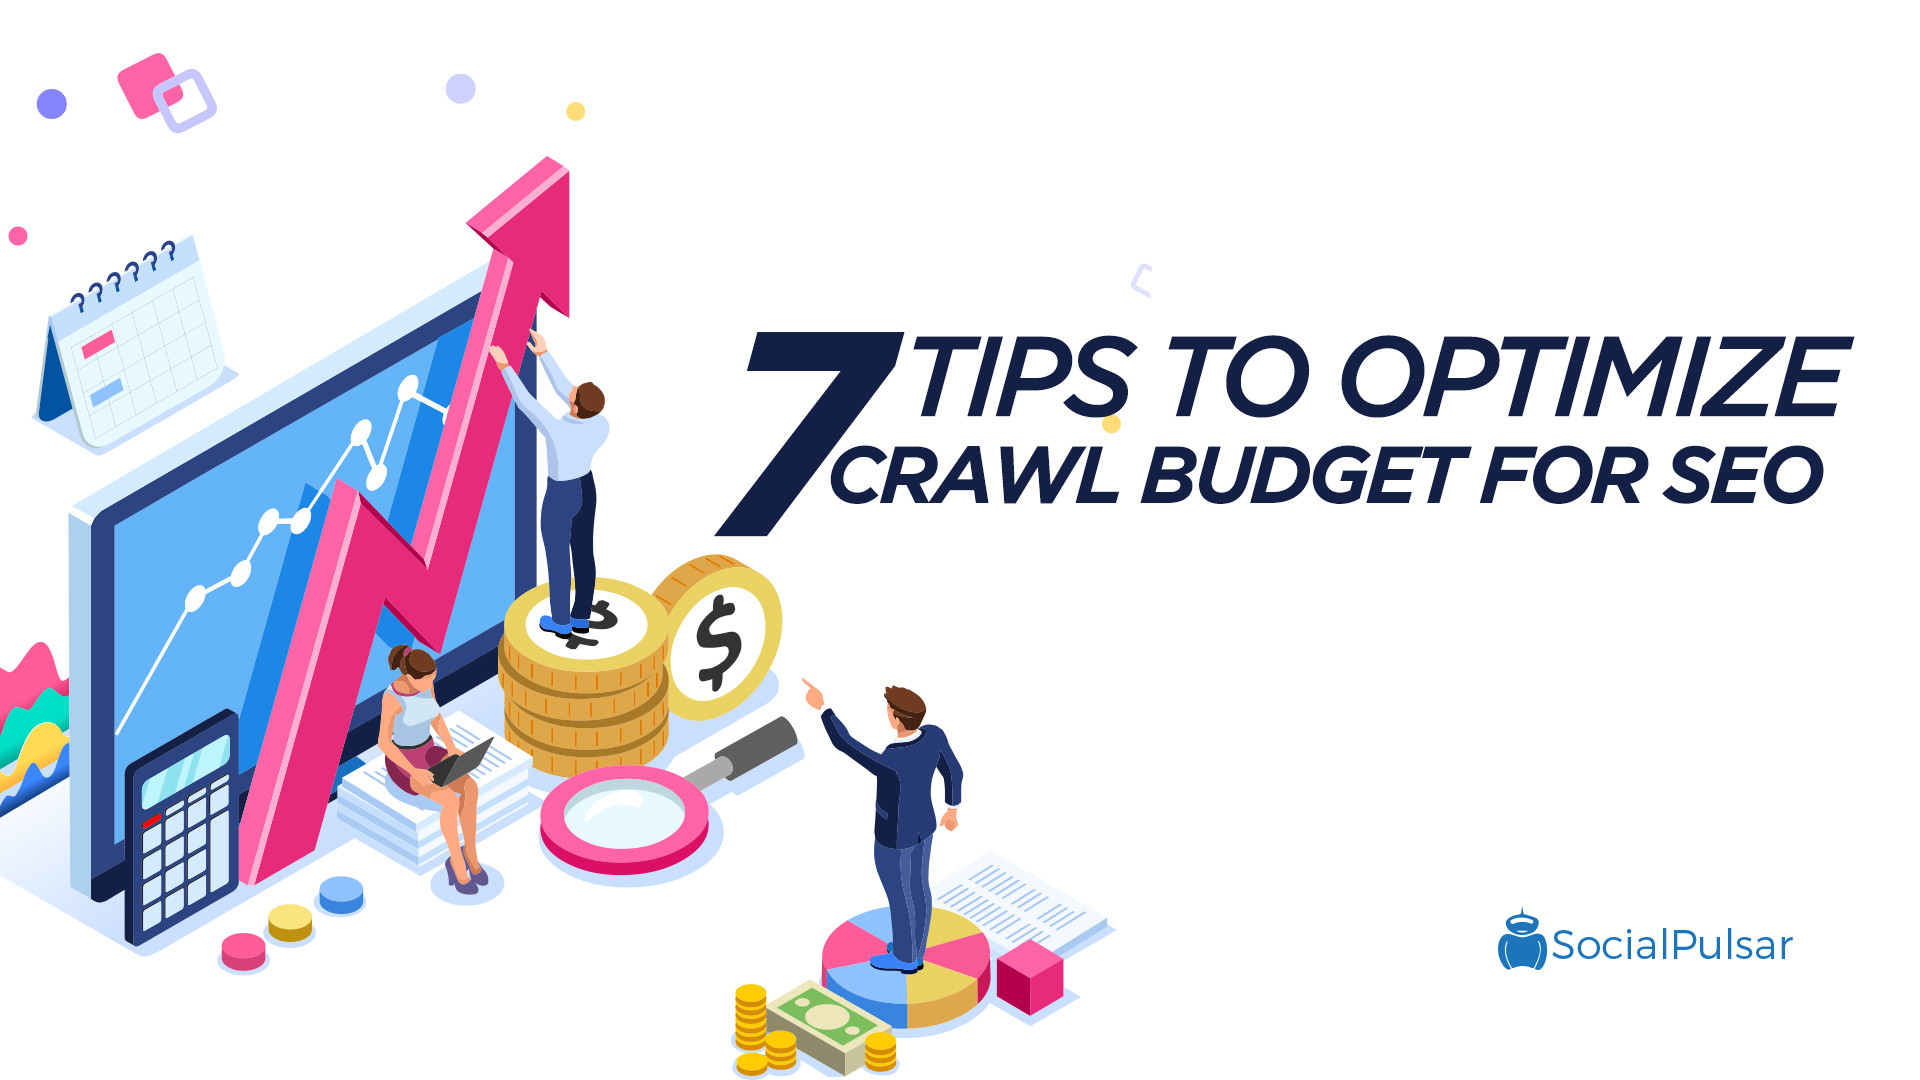 7 Tips To Optimize The Crawl Budget For SEO